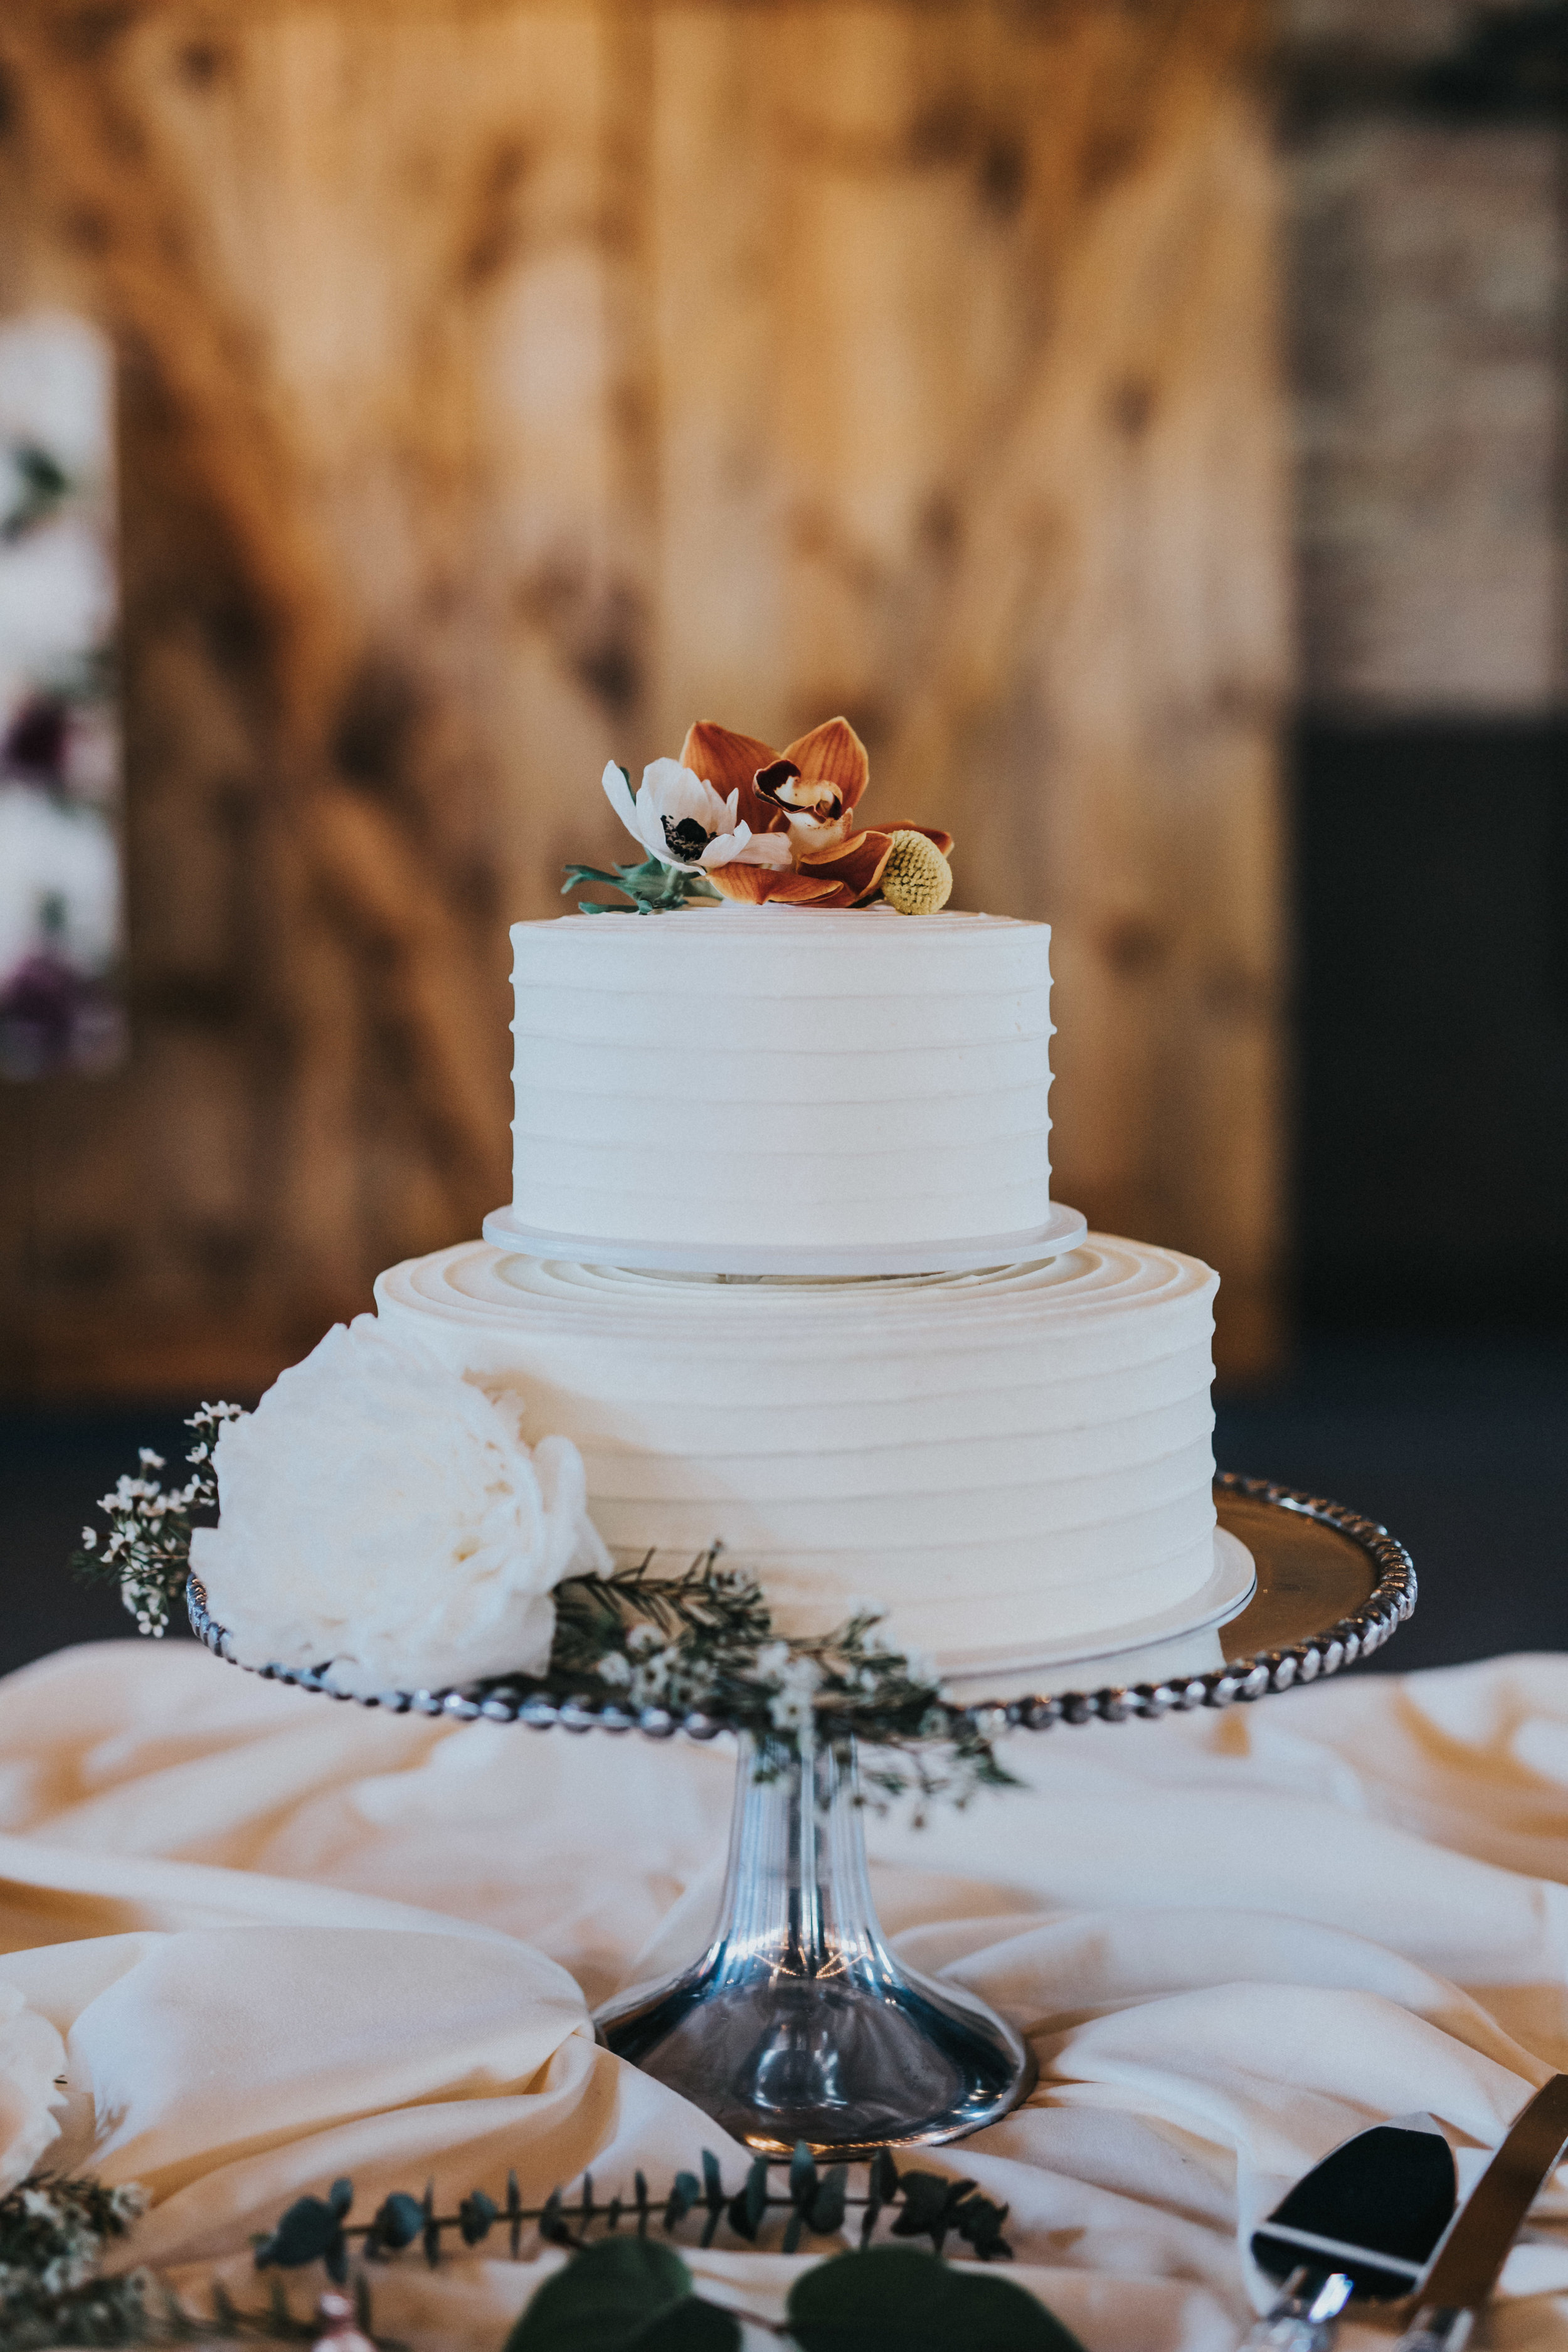 Buttercream tiramisu two tiered cake simple frosting with orchid and peony on top | Russell Heeter Photography :: Minneapolis wedding planner Sixpence Events :: Nicollet Island Pavilion :: april wedding in Minnesota.jpg